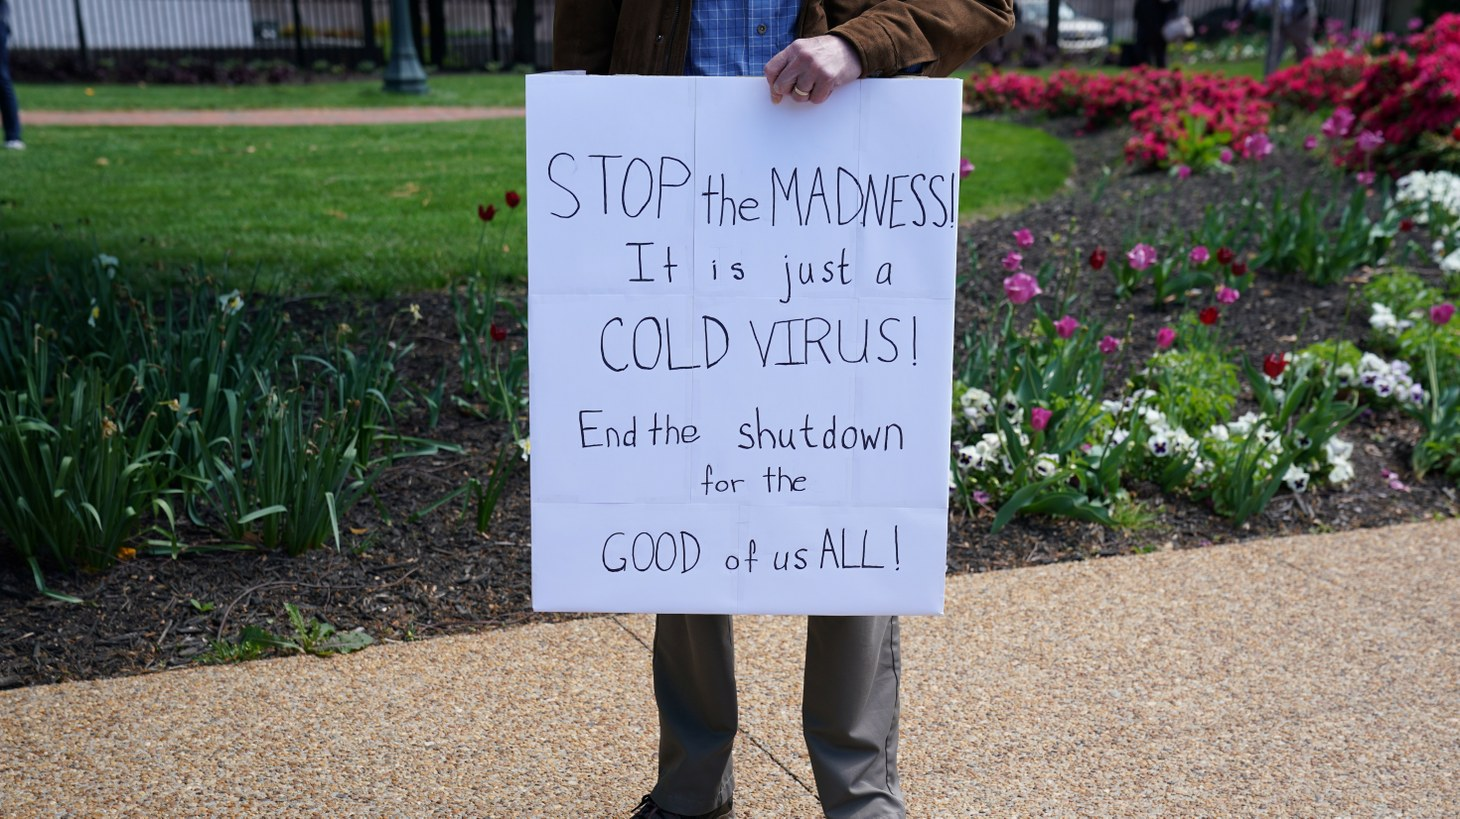 A lone demonstrator holds a sign in opposition to Virginia's stay-at-home order and business closures in the wake of the coronavirus disease (COVID-19) outbreak during a protest against the lockdown measures in Richmond, Virginia, U.S., April 16, 2020.